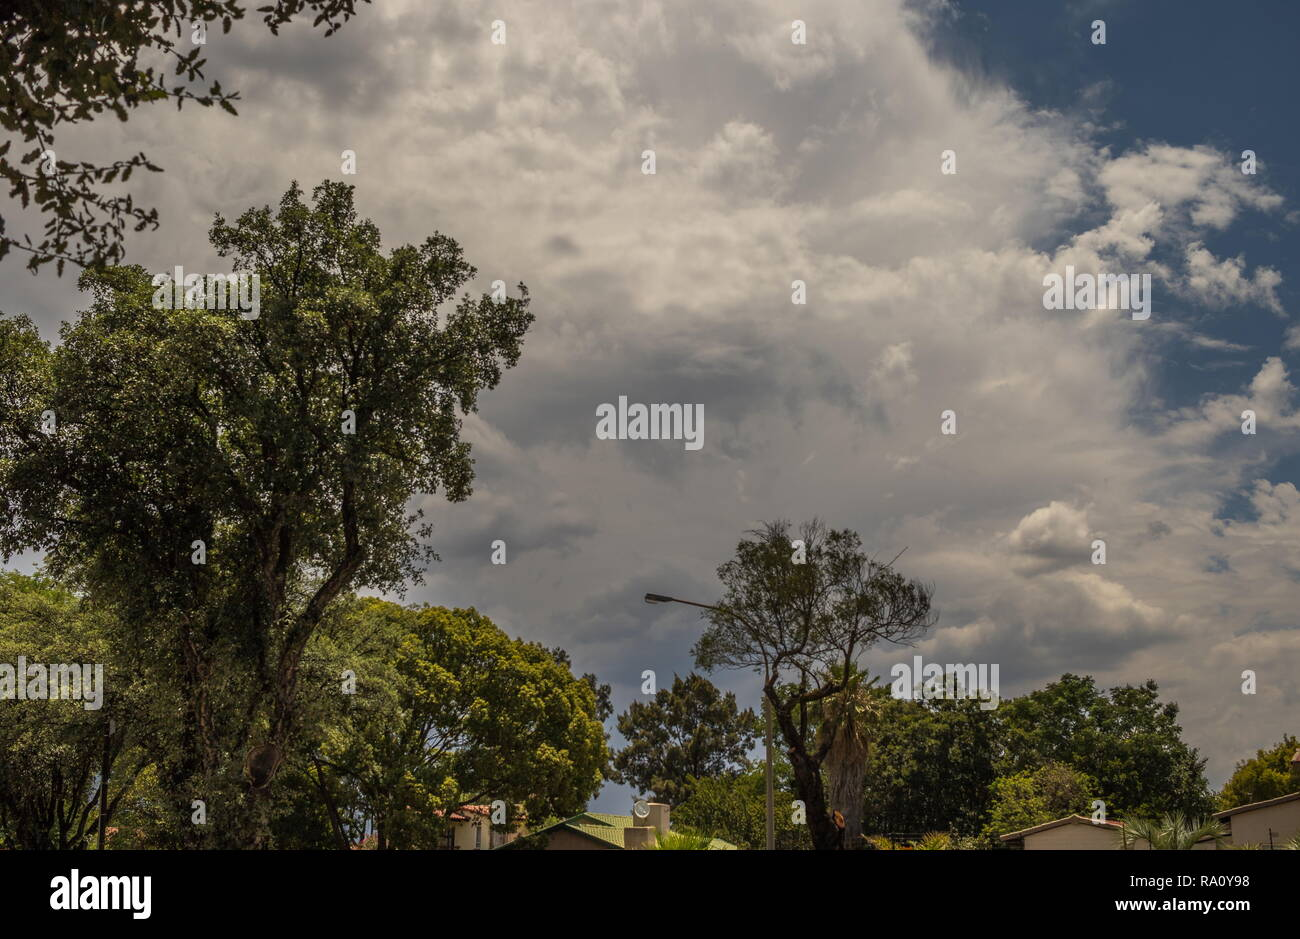 Threatening storm clouds above a residential area in Gauteng, South Africa image in landscape format with copy space - Stock Image